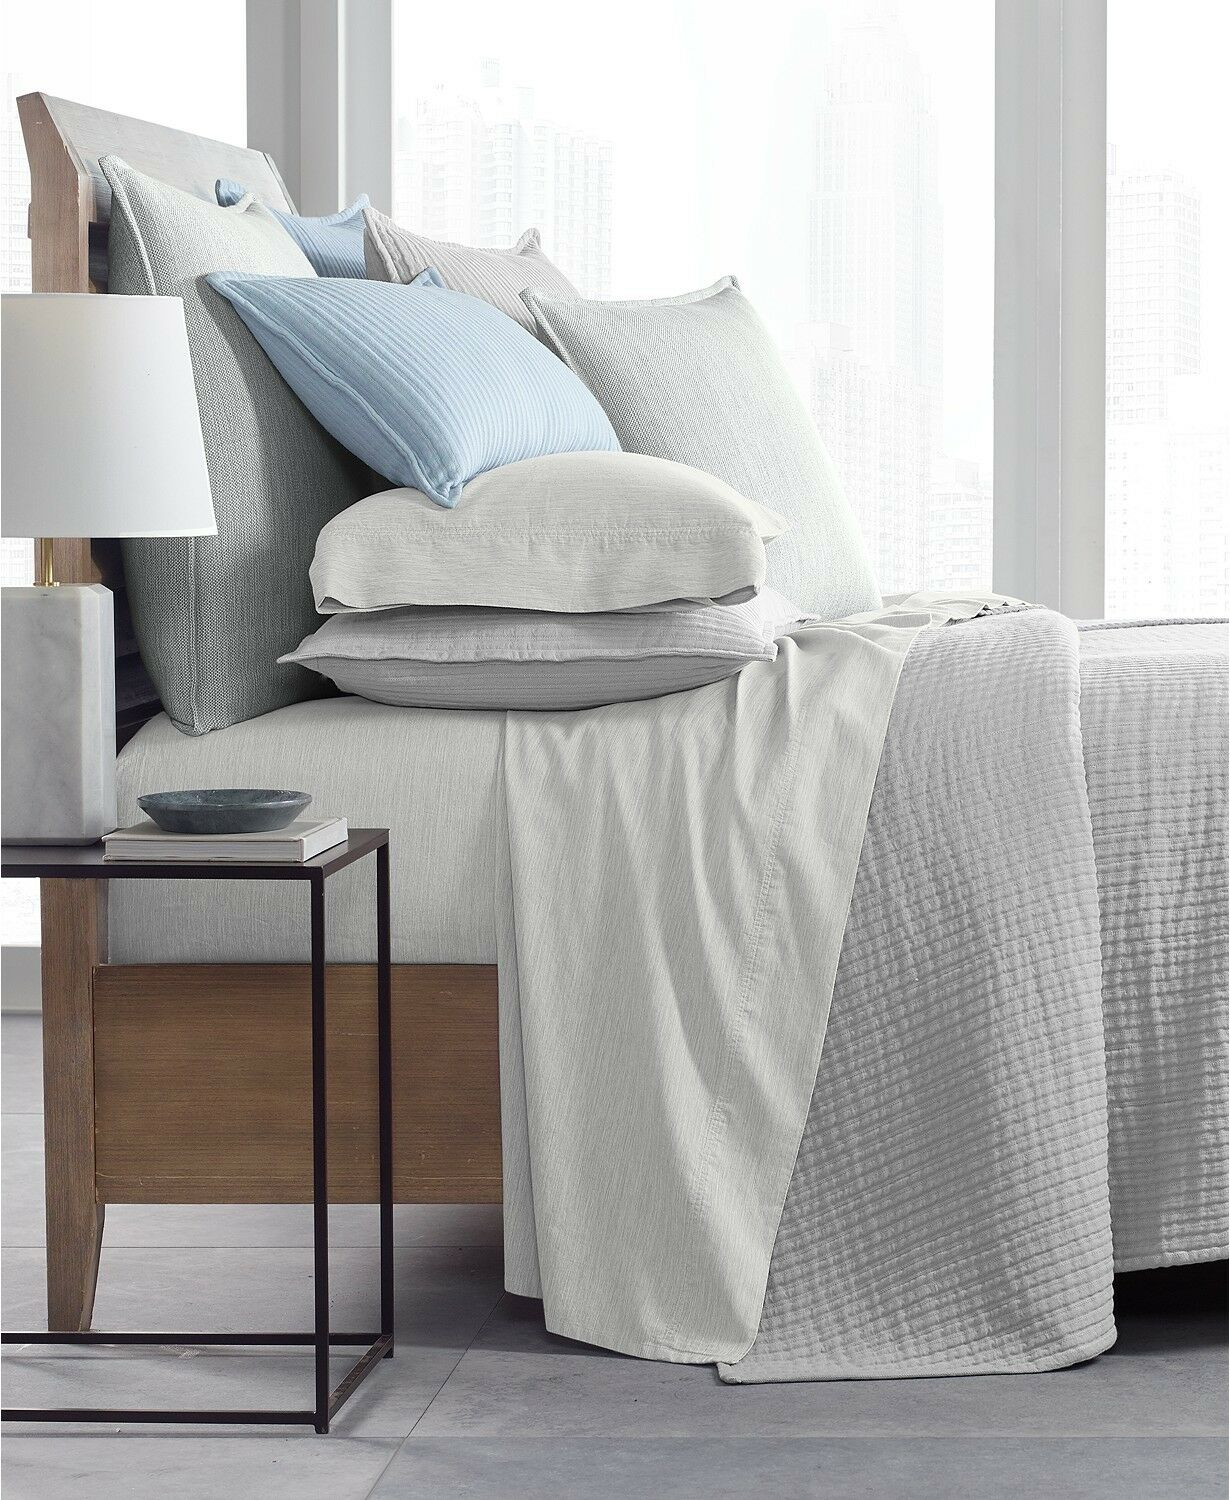 Hotel Collection Matelasse Cotton KING Coverlet WHITE Bedding  280 E91291